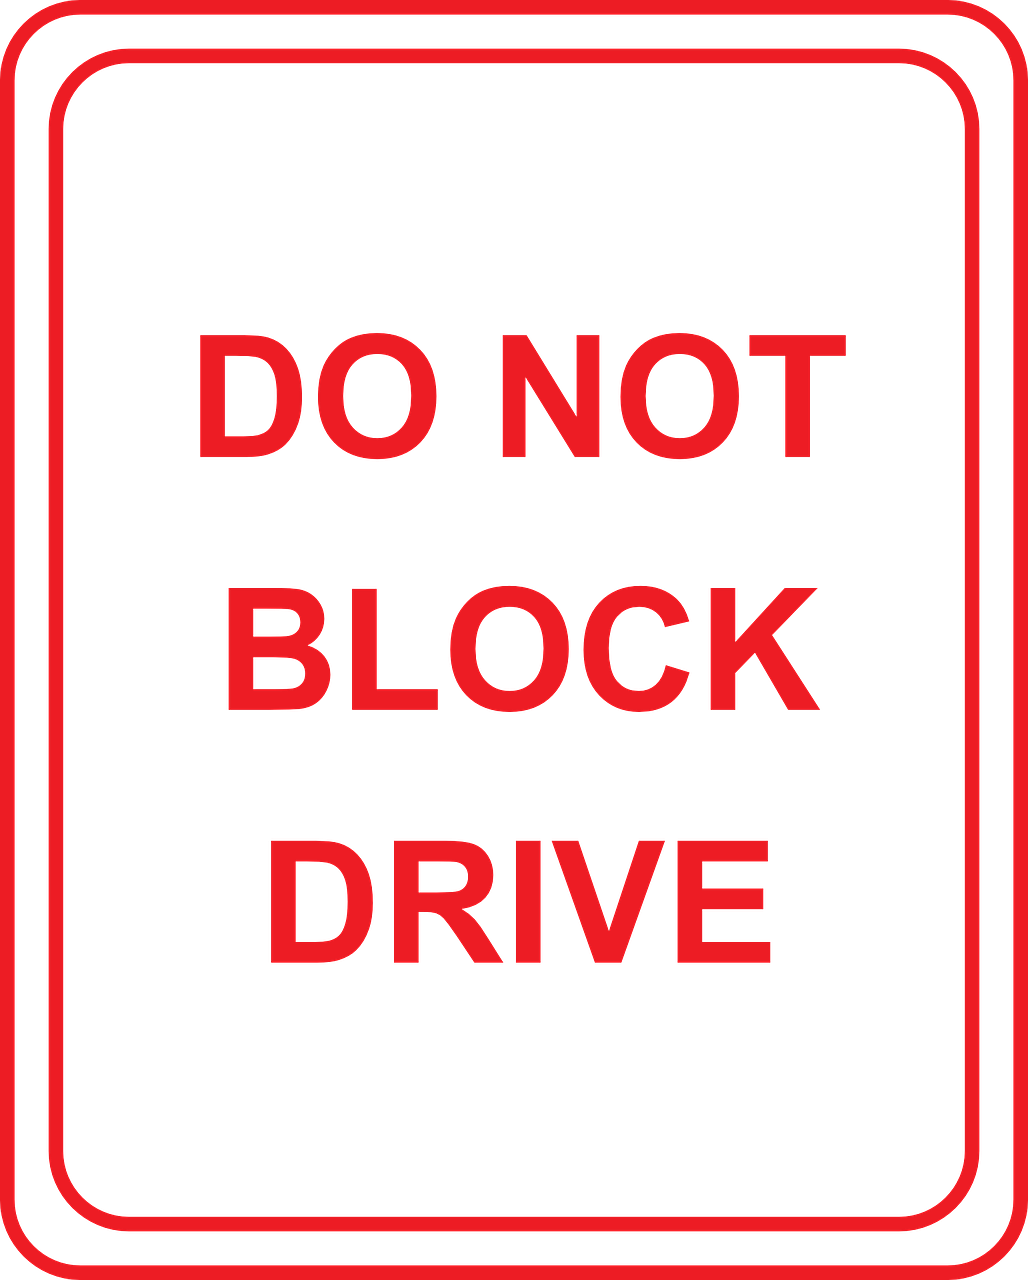 drive,traffic,road,parking,block,instruction,rule,not,park,sign,free vector graphics,free pictures, free photos, free images, royalty free, free illustrations, public domain